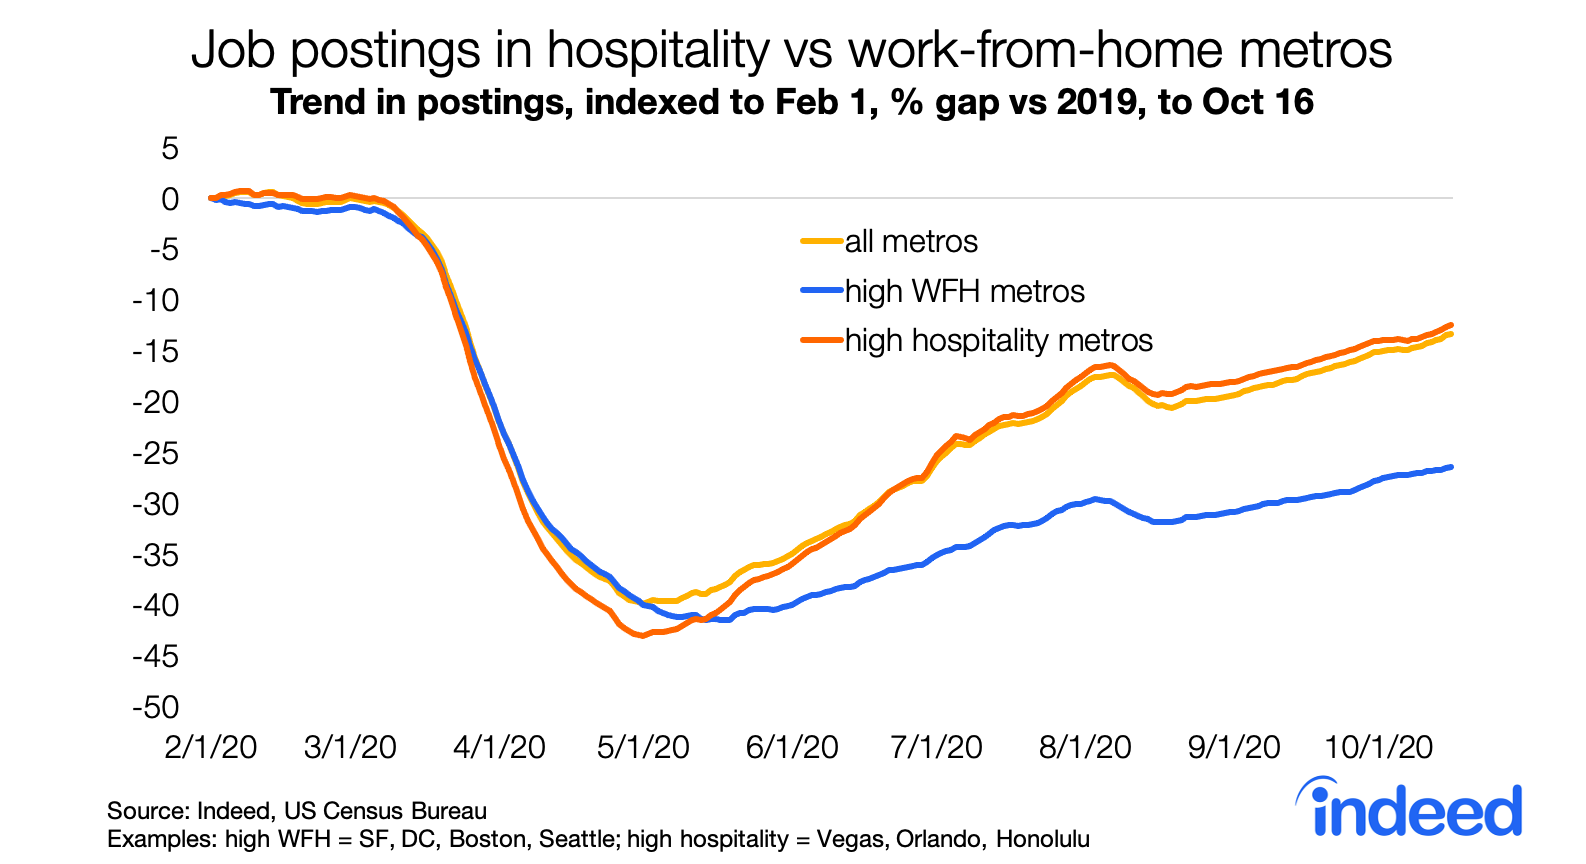 Line graph showing job postings trends in hospitality vs work-from-home metros.